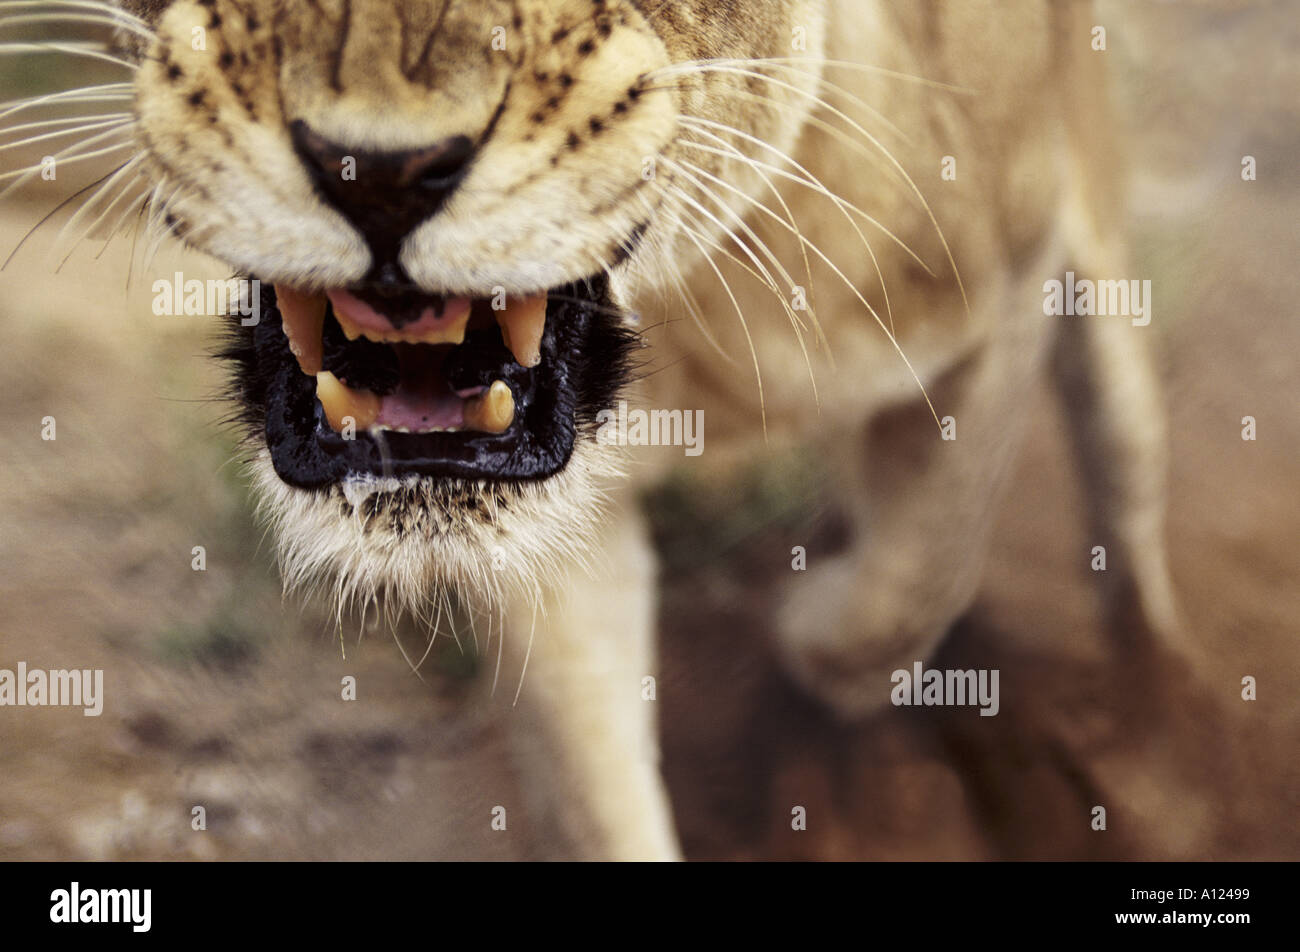 Lioness snarling South Africa - Stock Image